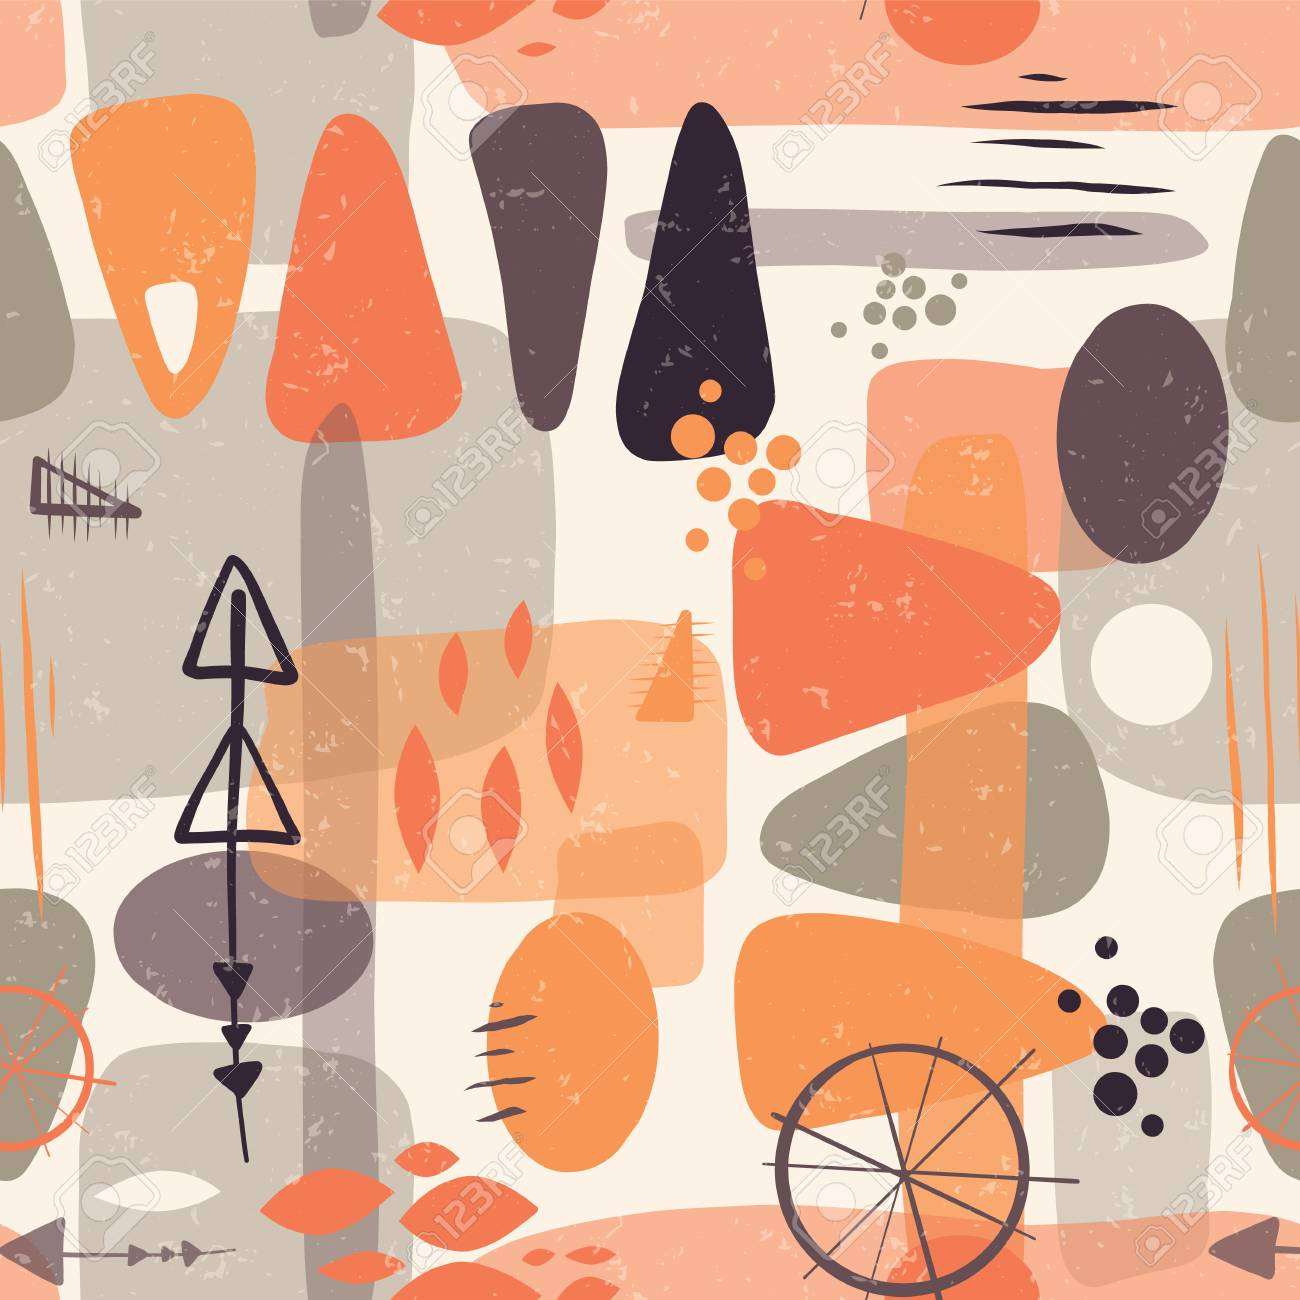 4c2a6db0d73 Abstract mid century shapes seamless vector background. 1950s print. Retro  inspired shapes squares